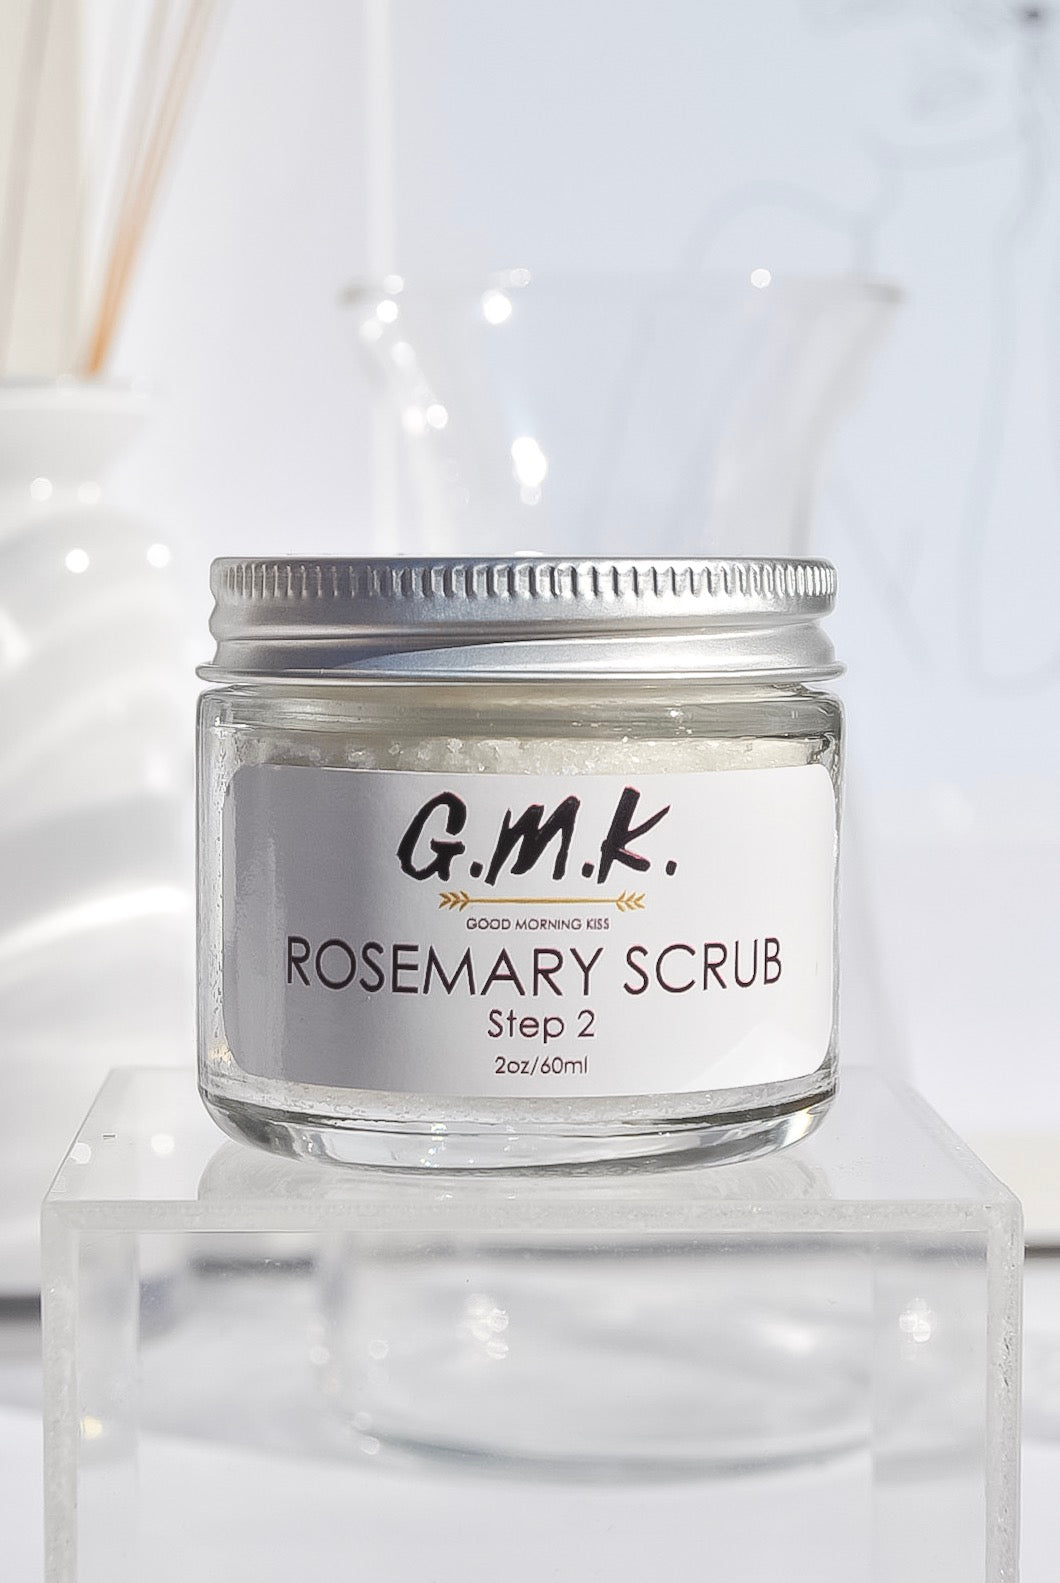 Rosemary Scrub Wholesale